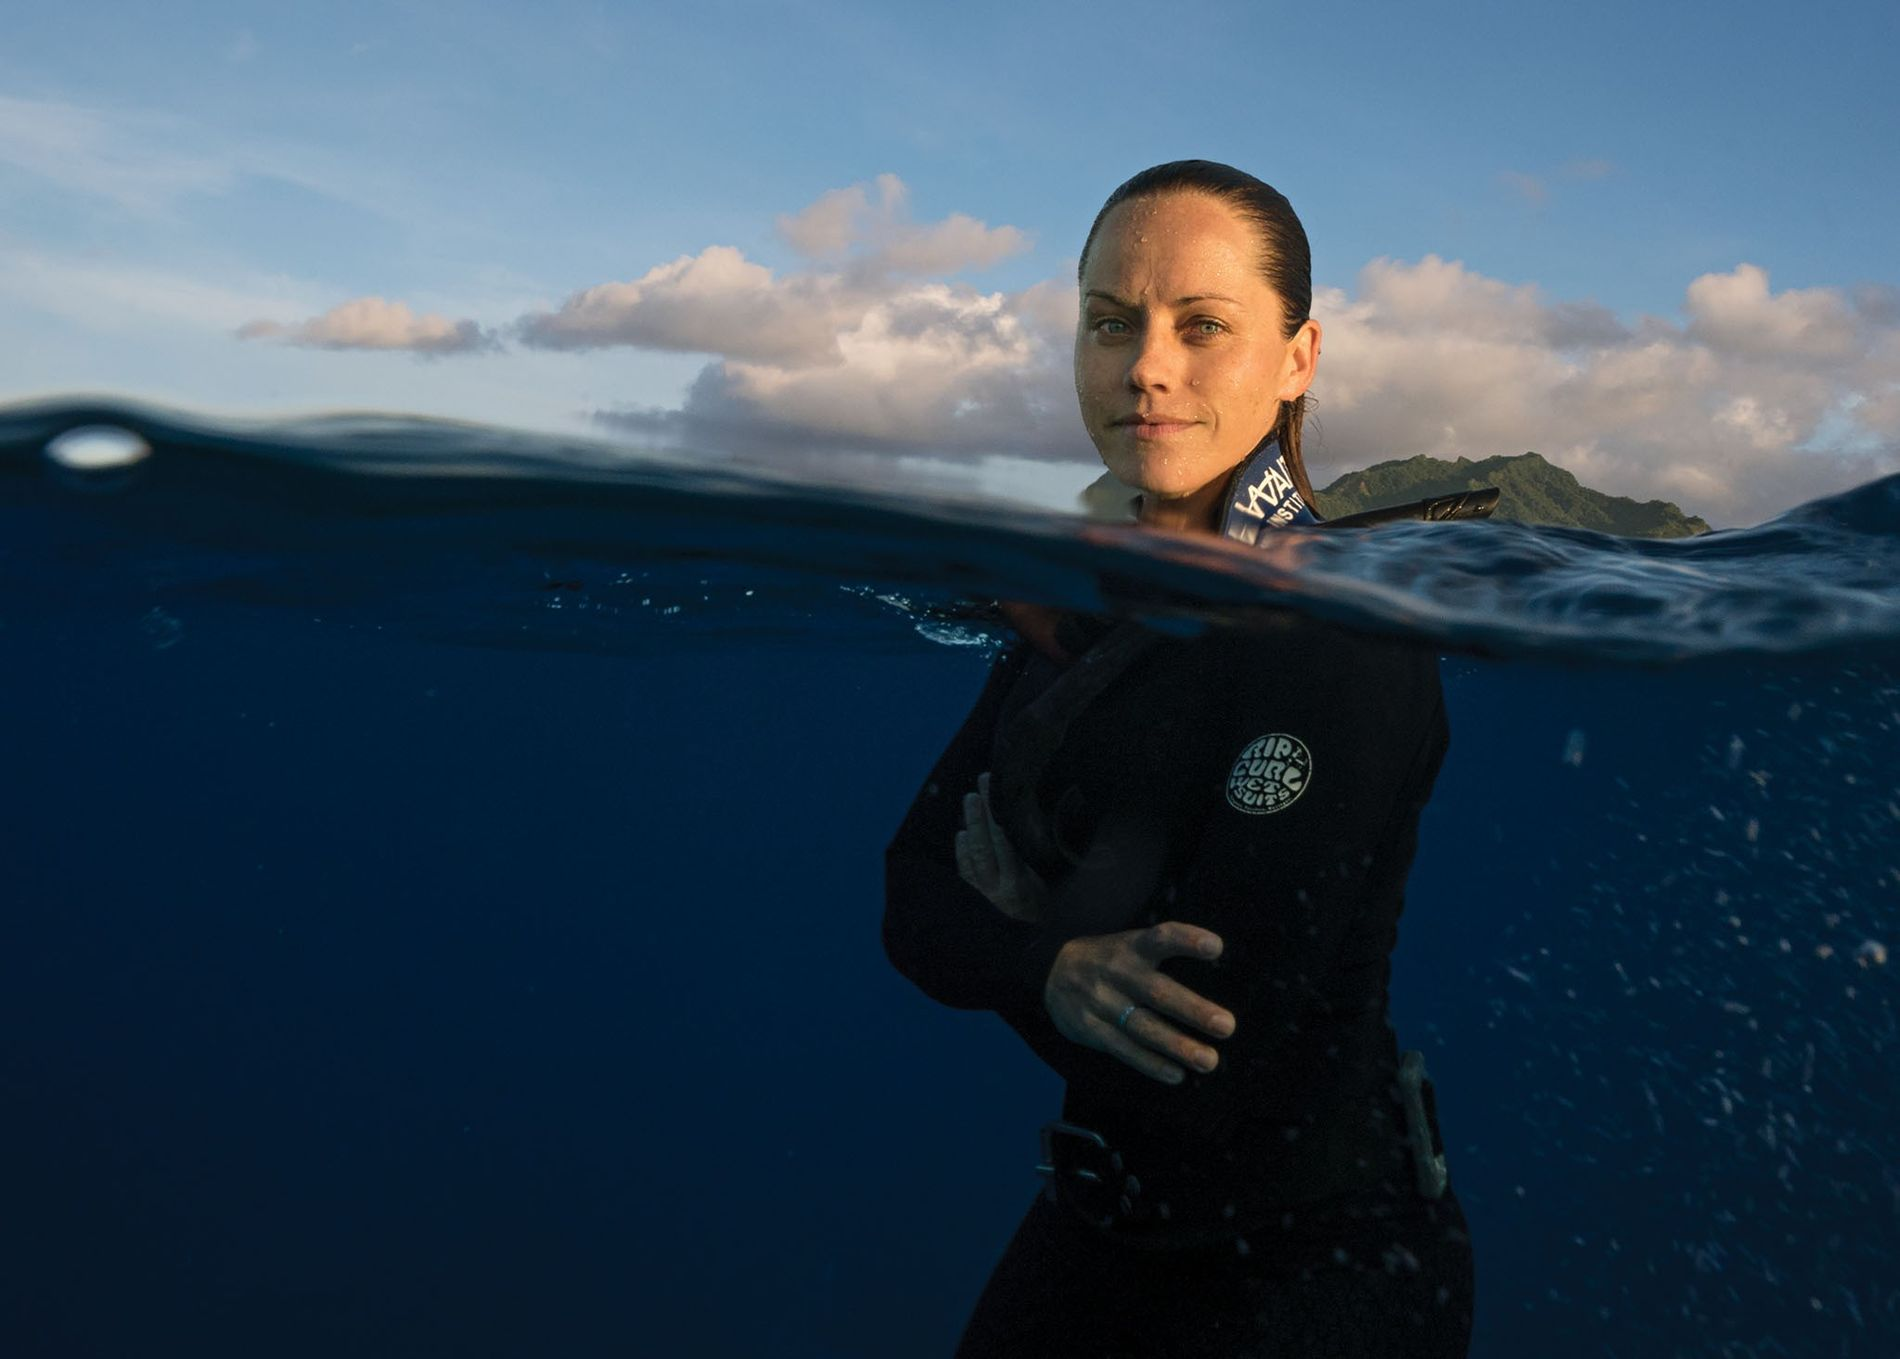 Jessica Cramp free dives off Rarotonga, the largest of the Cook Islands.